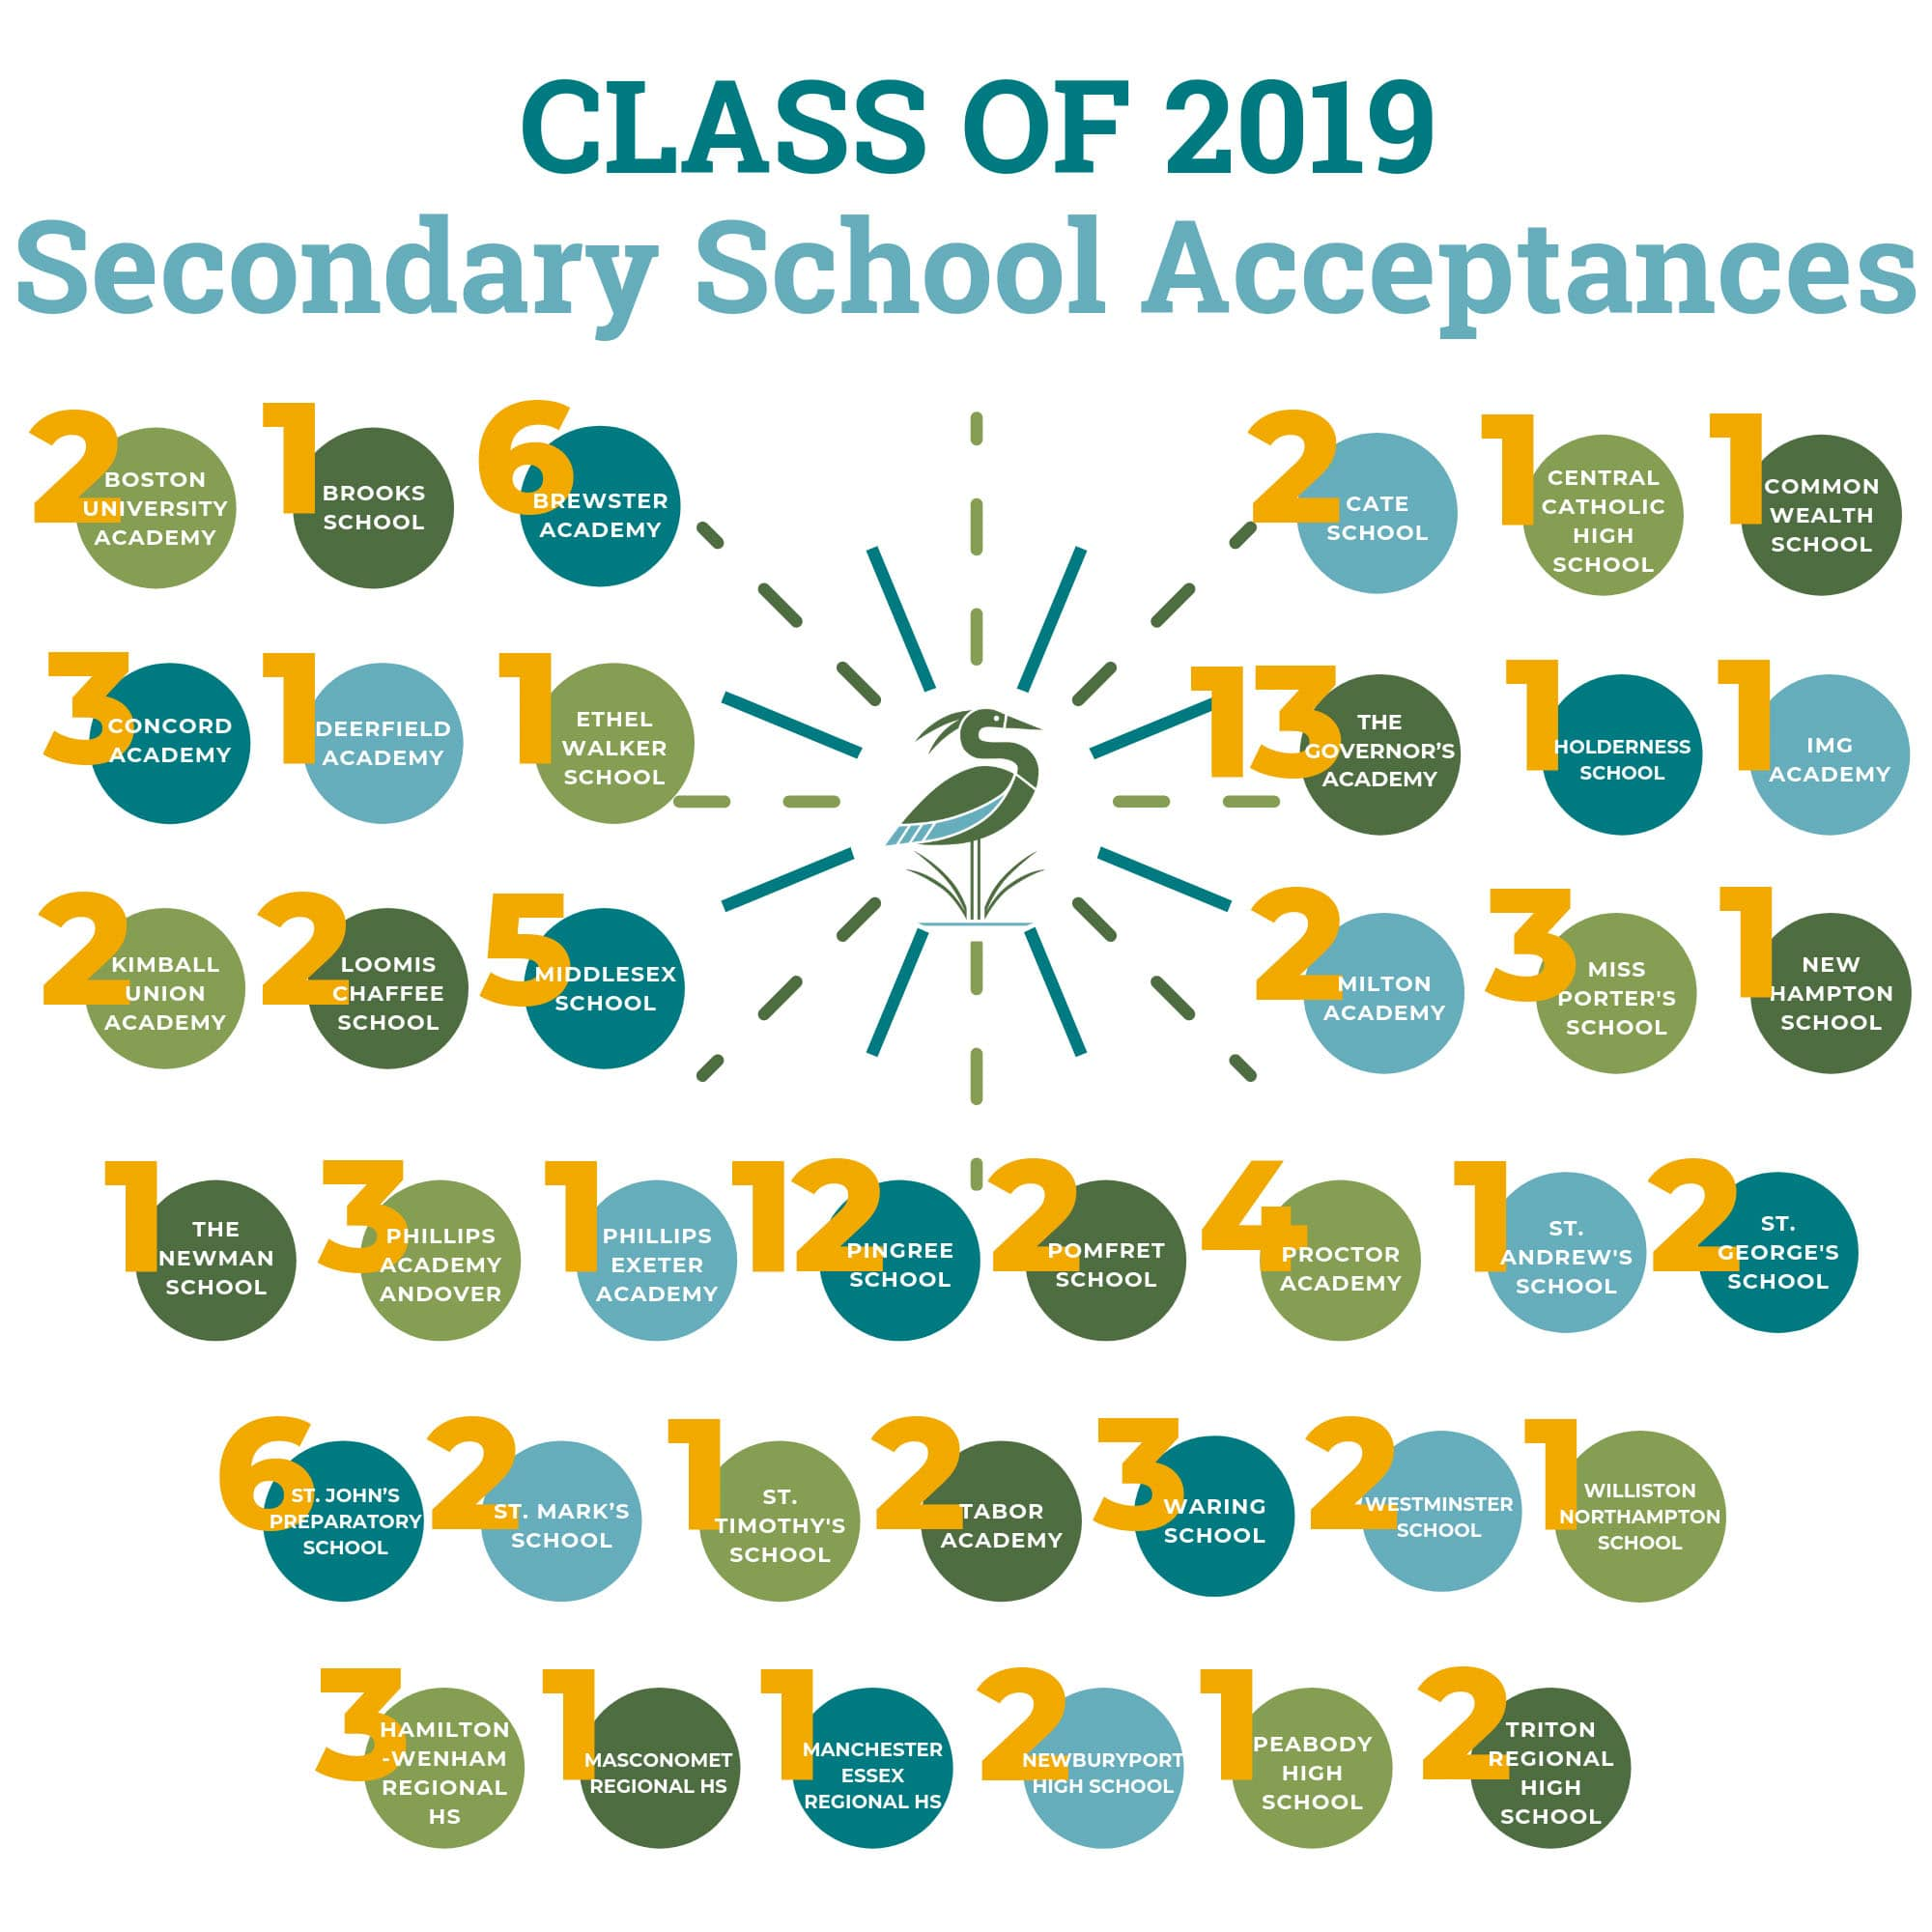 Chart of Secondary School Acceptances from the Class of 2019